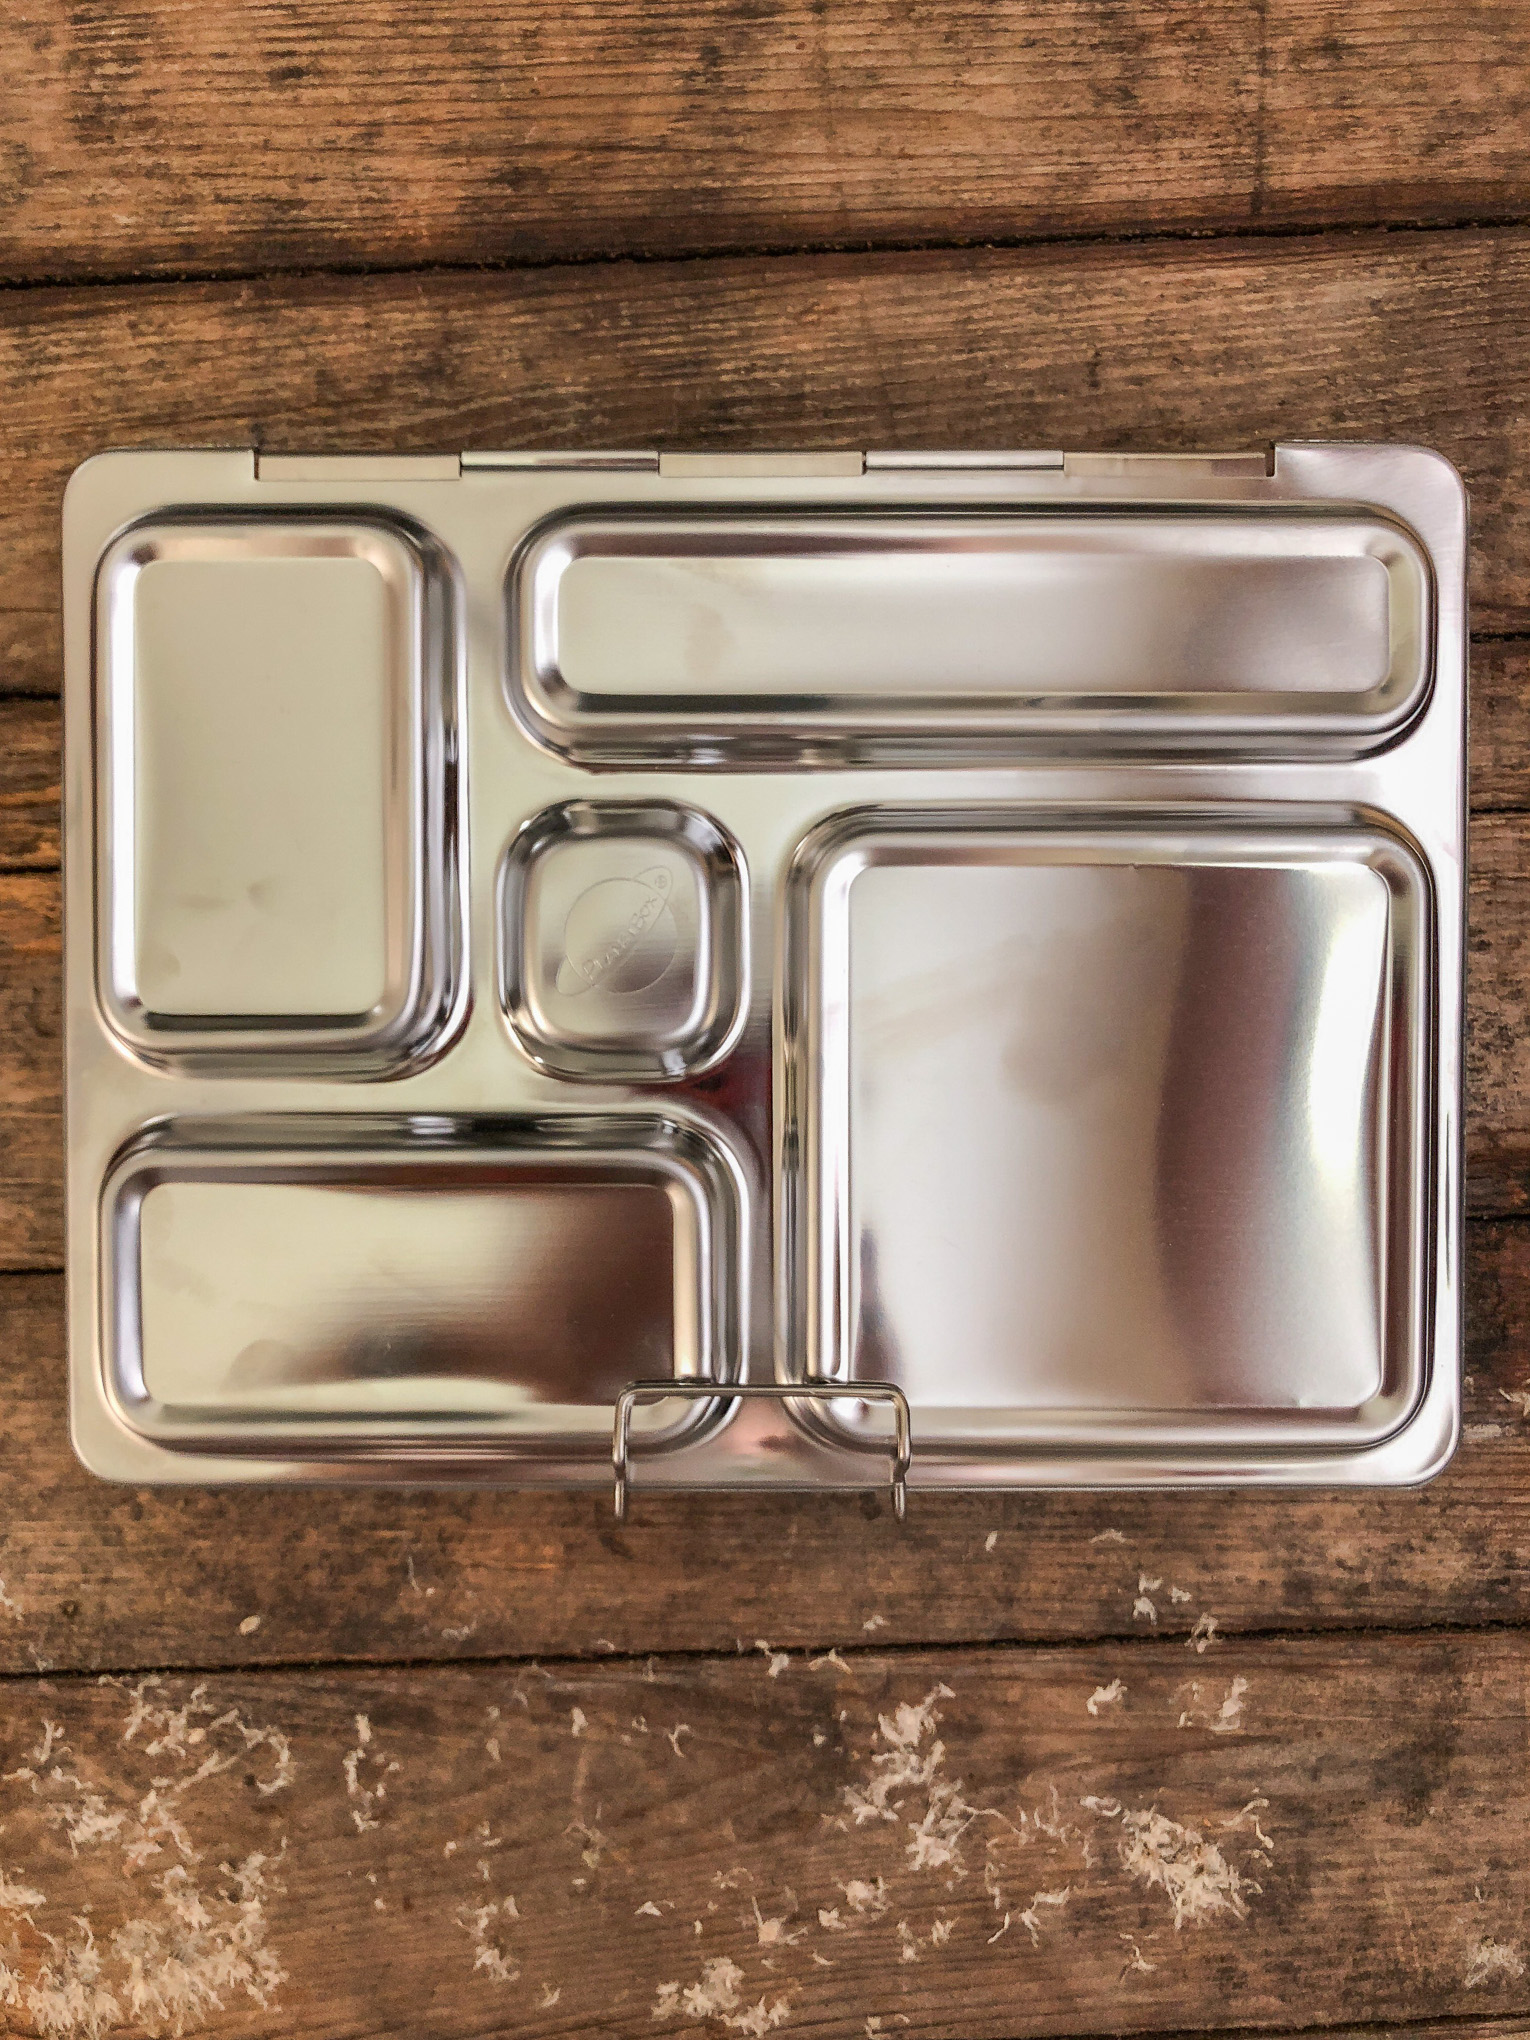 Metal lunchbox with compartments